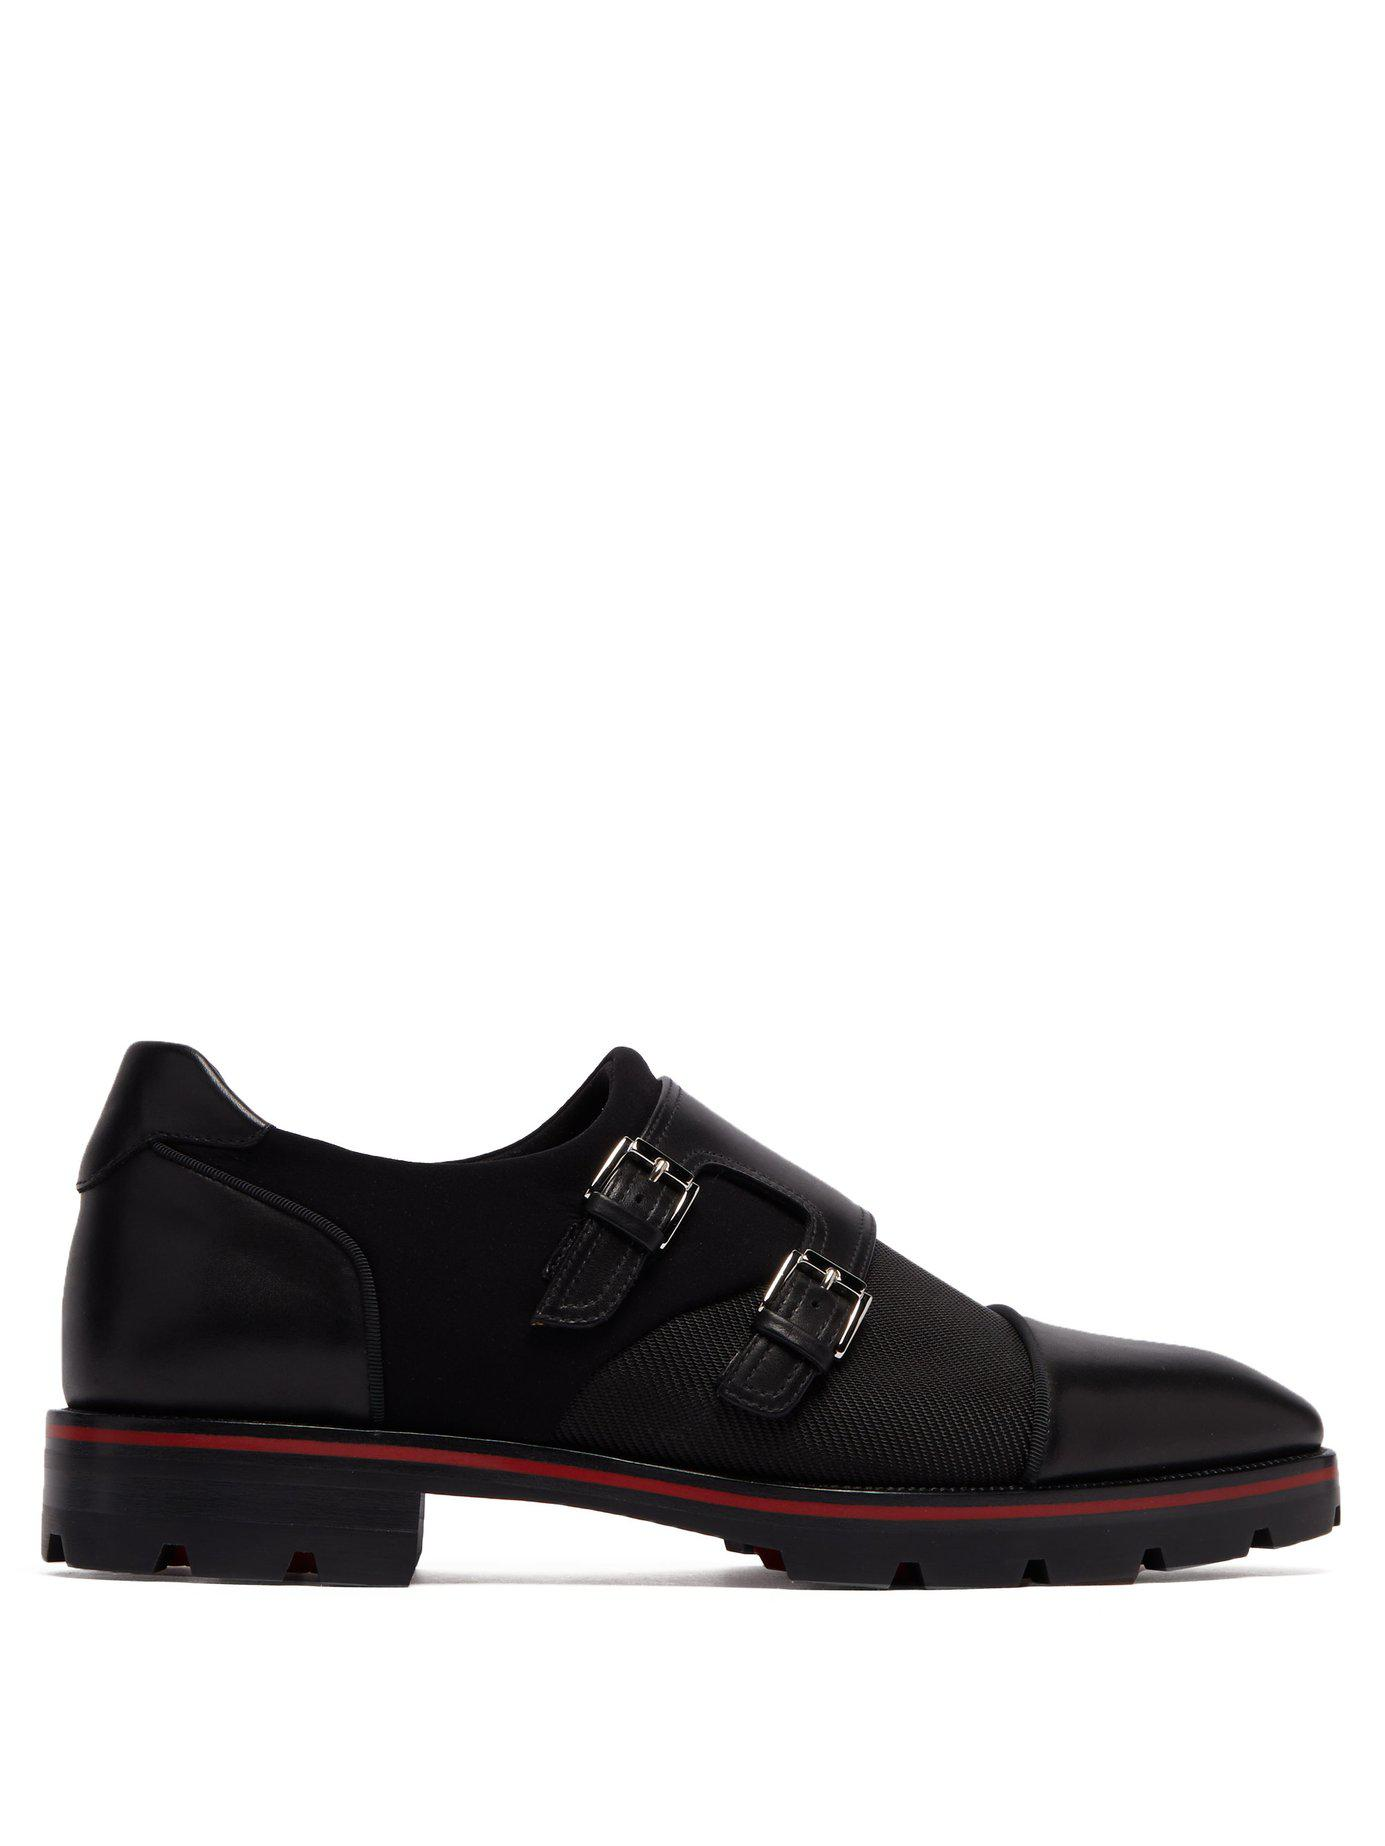 c99b5e976f2 Lyst - Christian Louboutin Mortisky Leather Derby Shoes in Black for Men